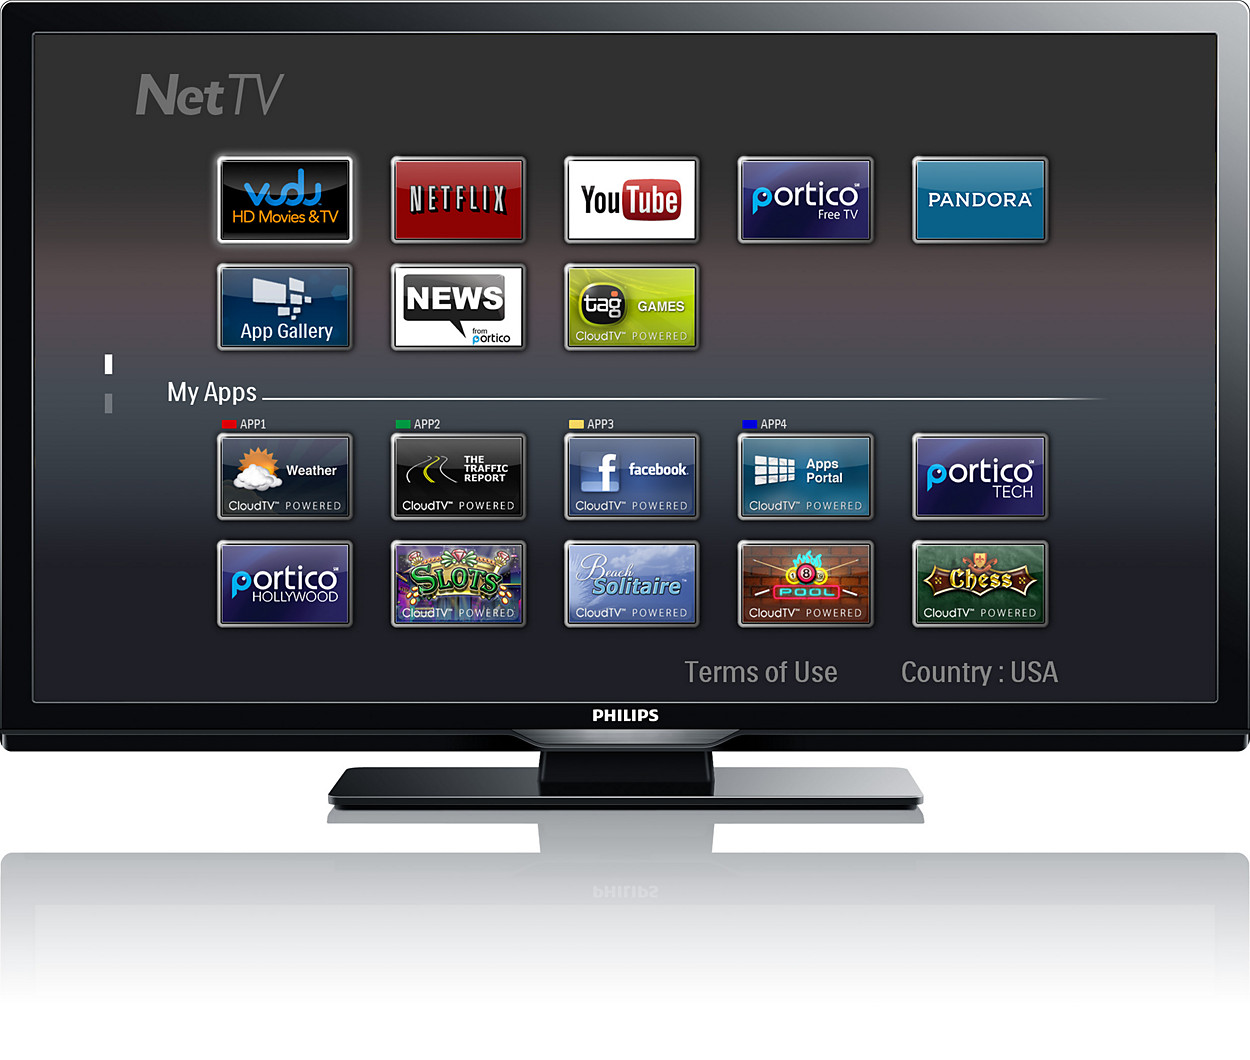 download netflix app philips smart tv